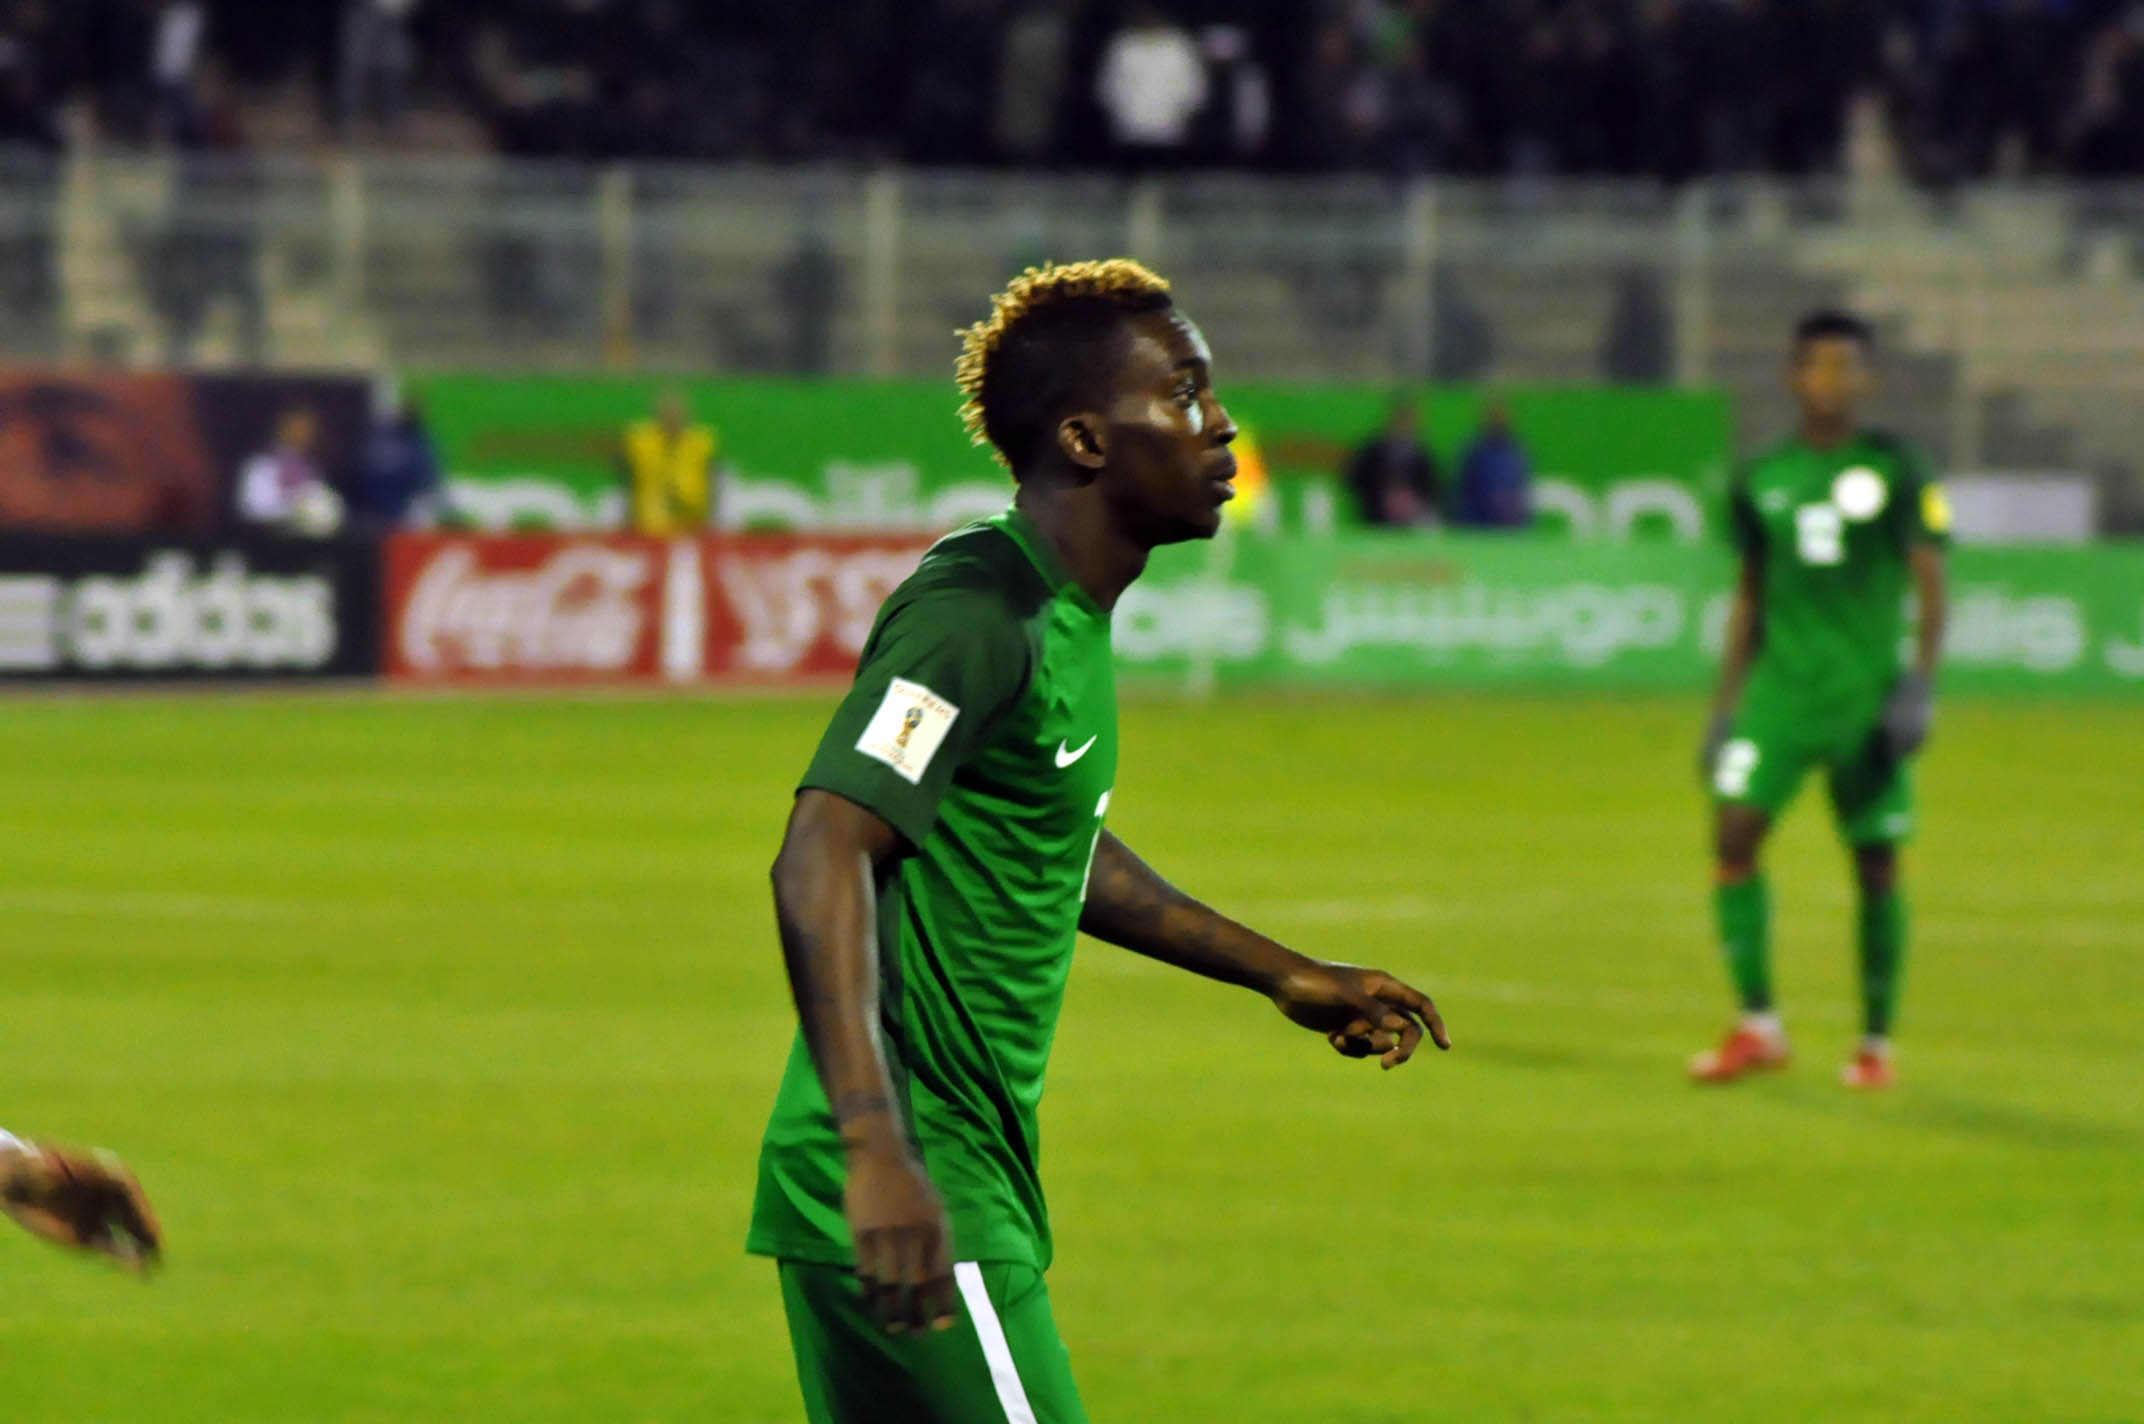 Super Eagles must be ready for any opponents in Russia - Christian Chukwu